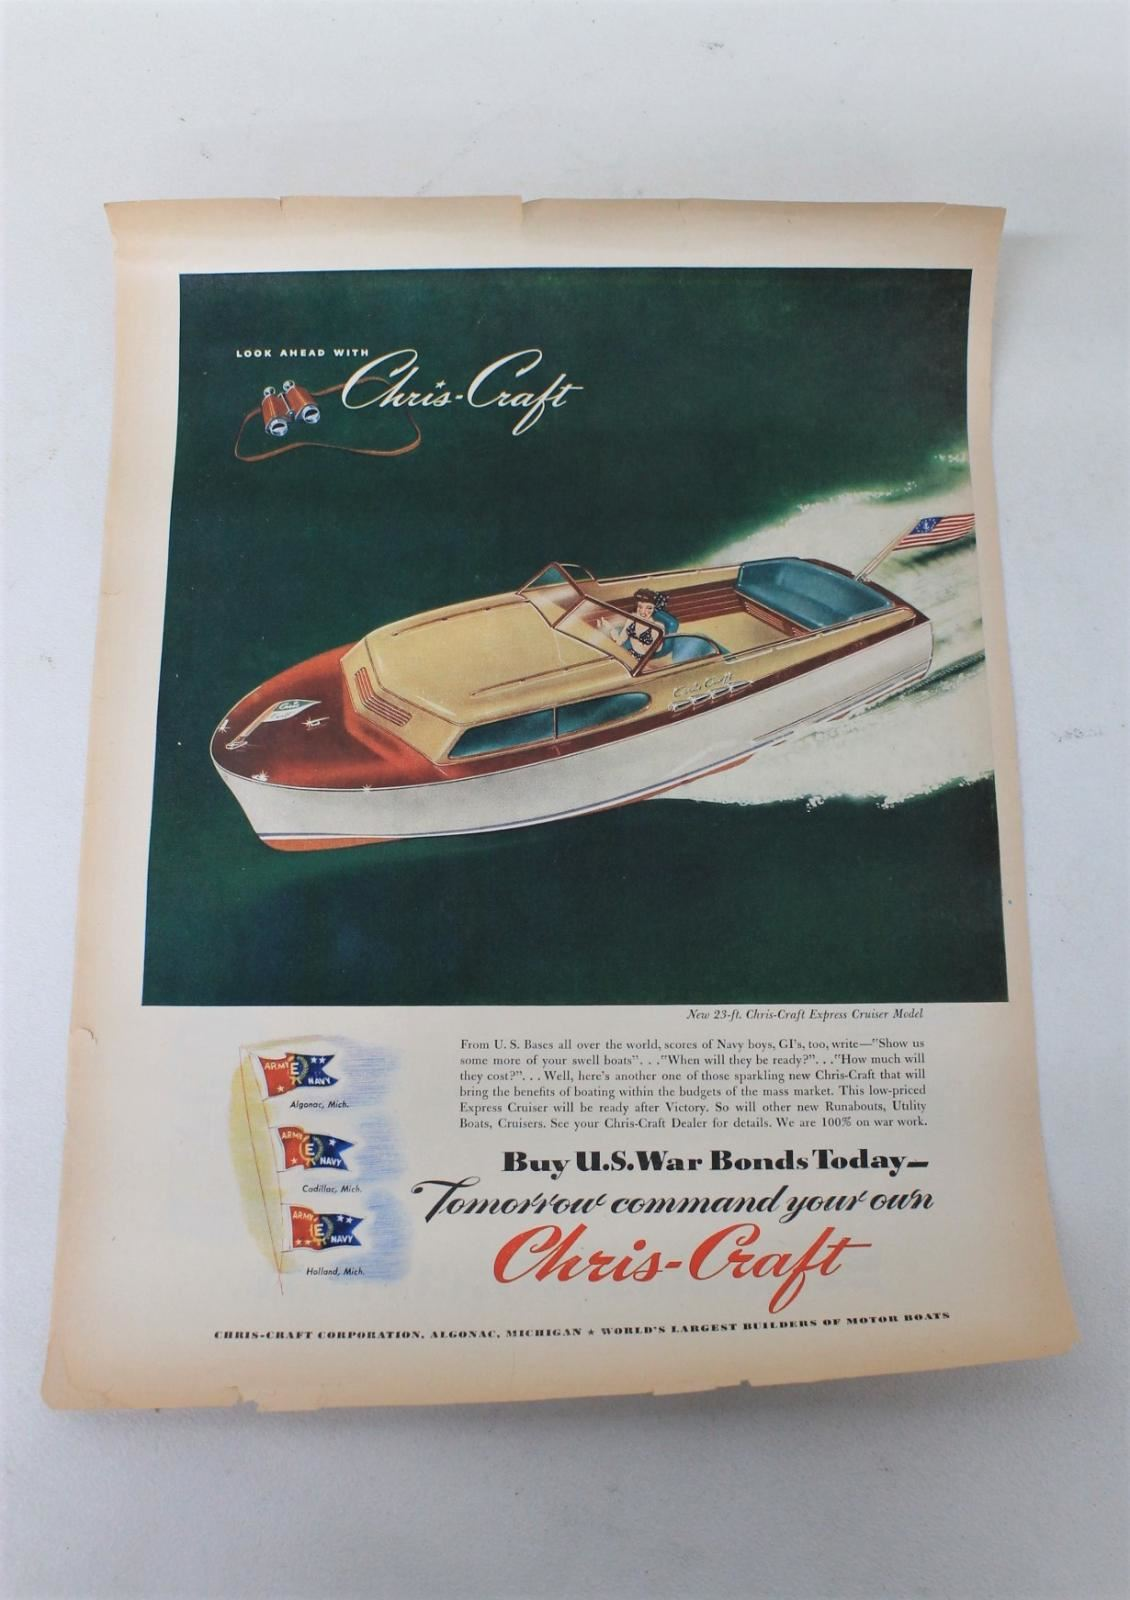 Chris-Craft-Express-Cruiser-Boat-w-Blonde-Girl-Large-Vintage-Ad-Print-Paper